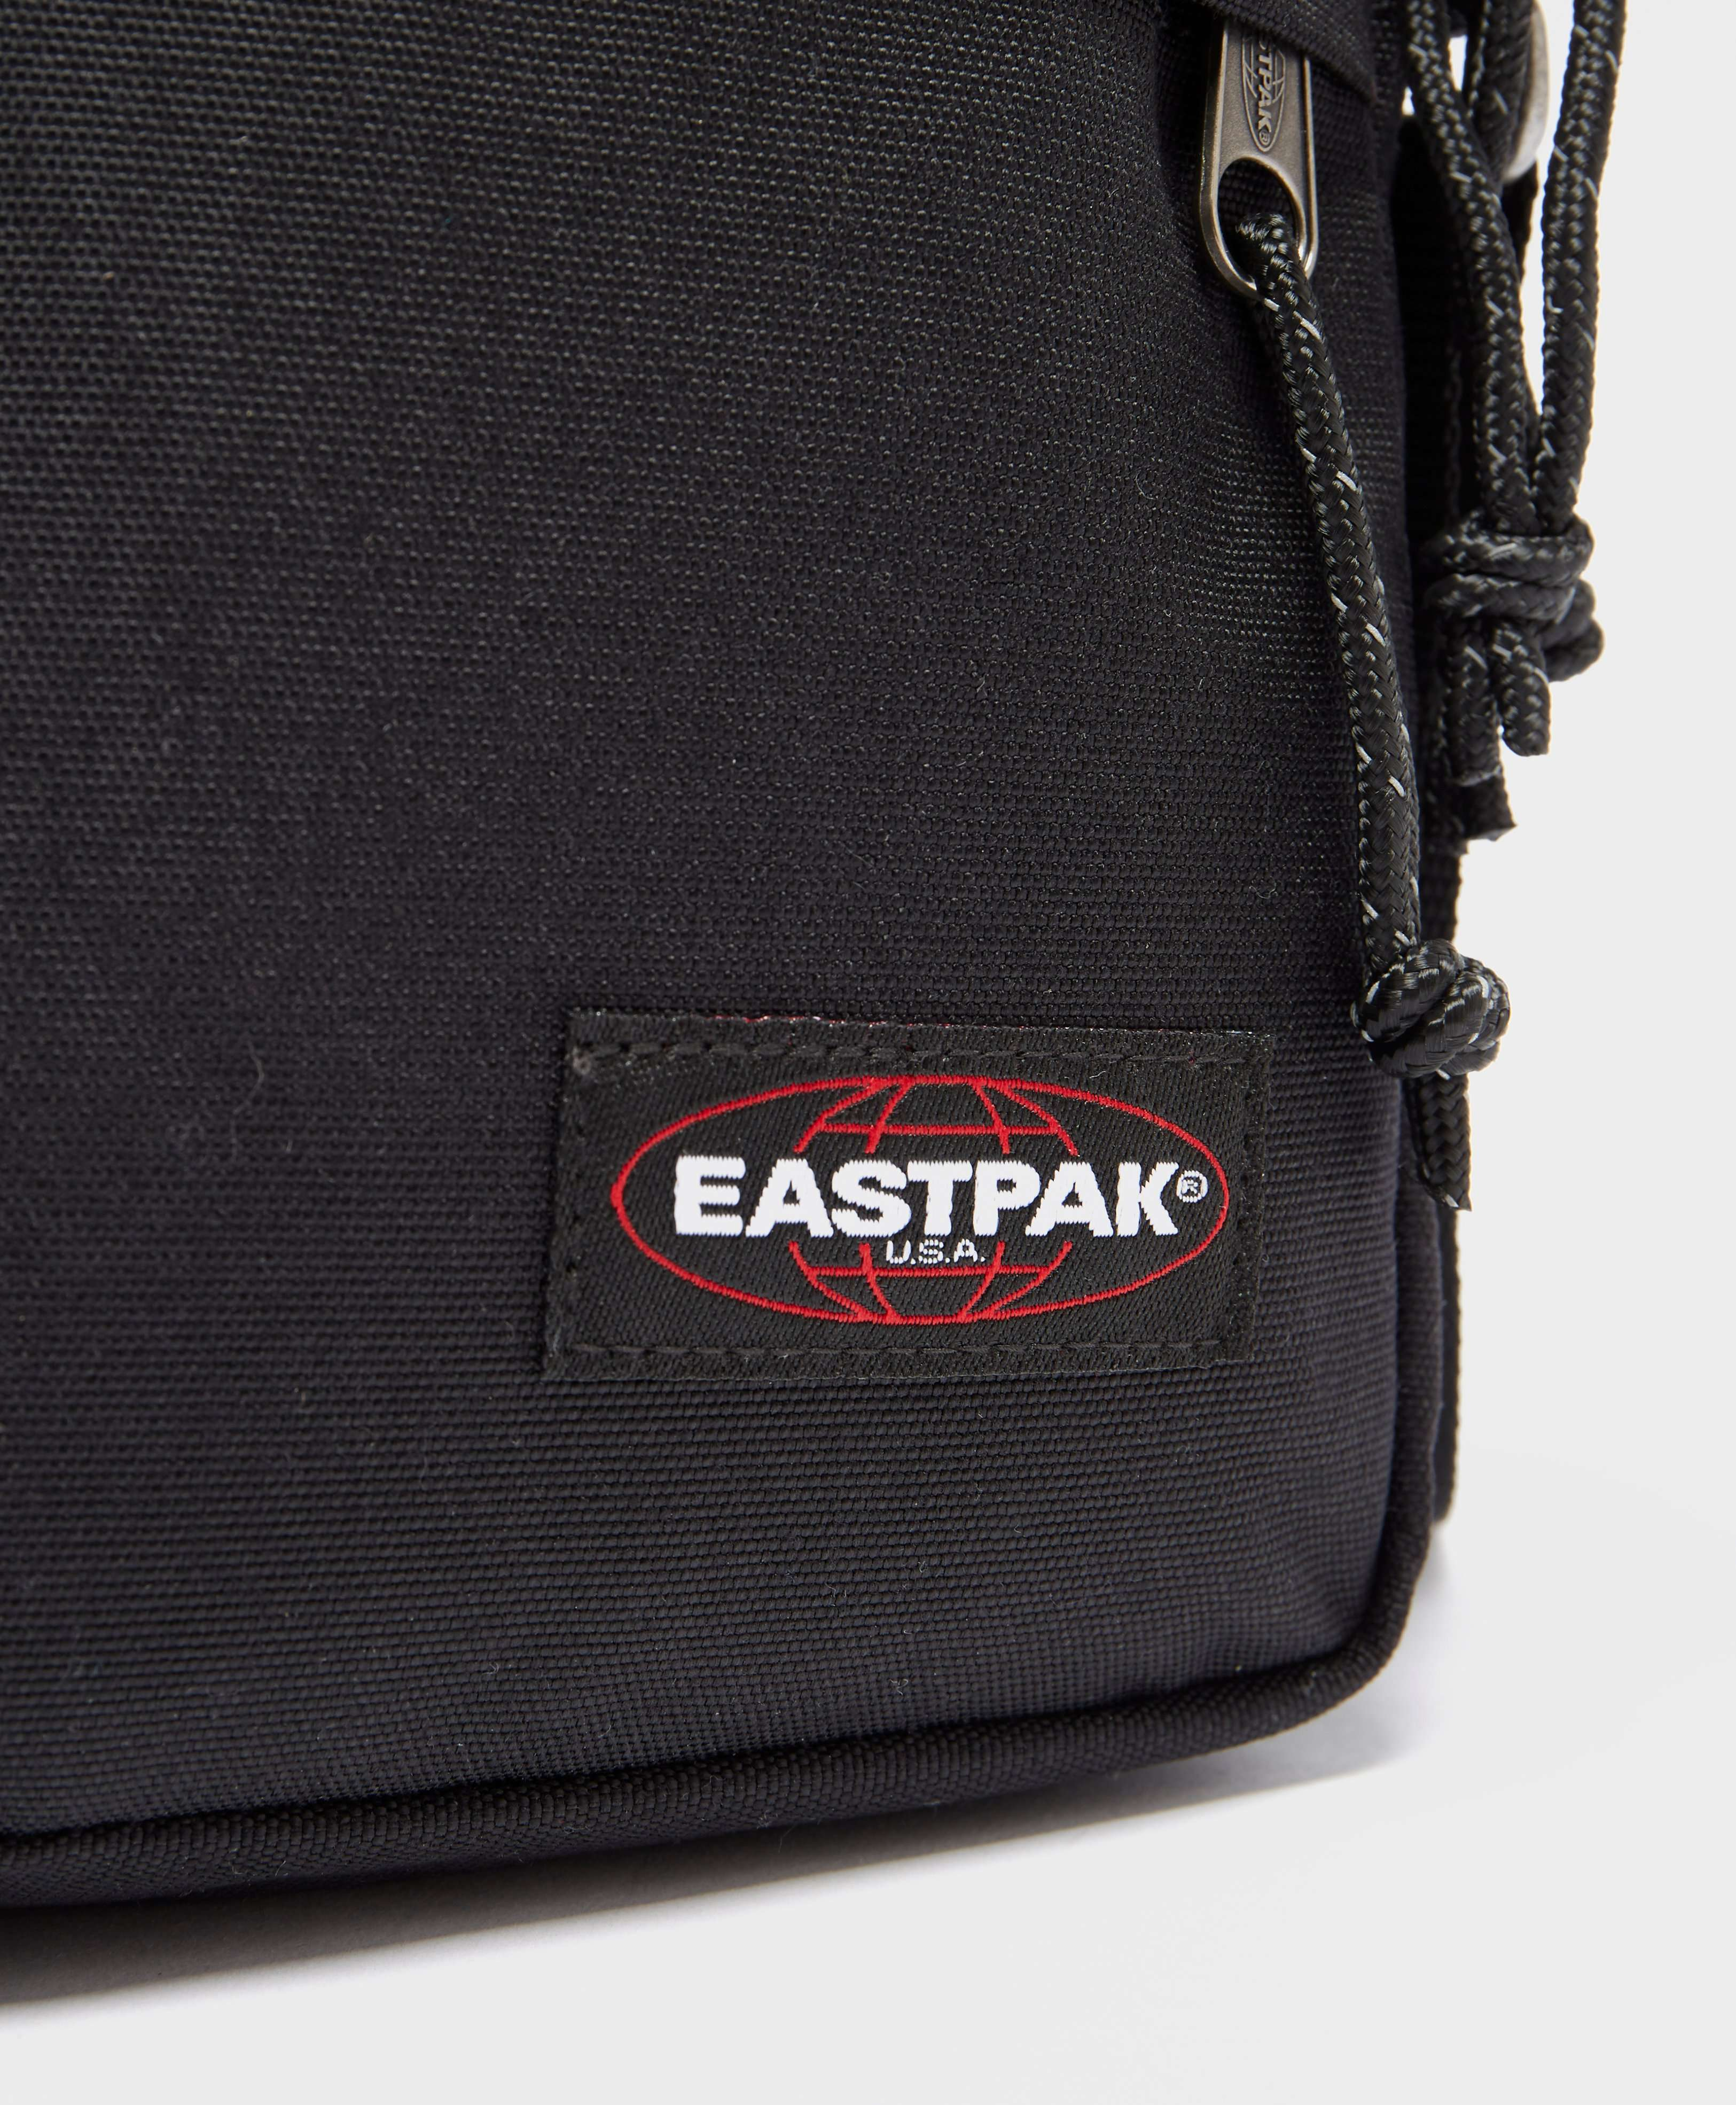 Eastpak The One Small Item Bag - Online Exclusive